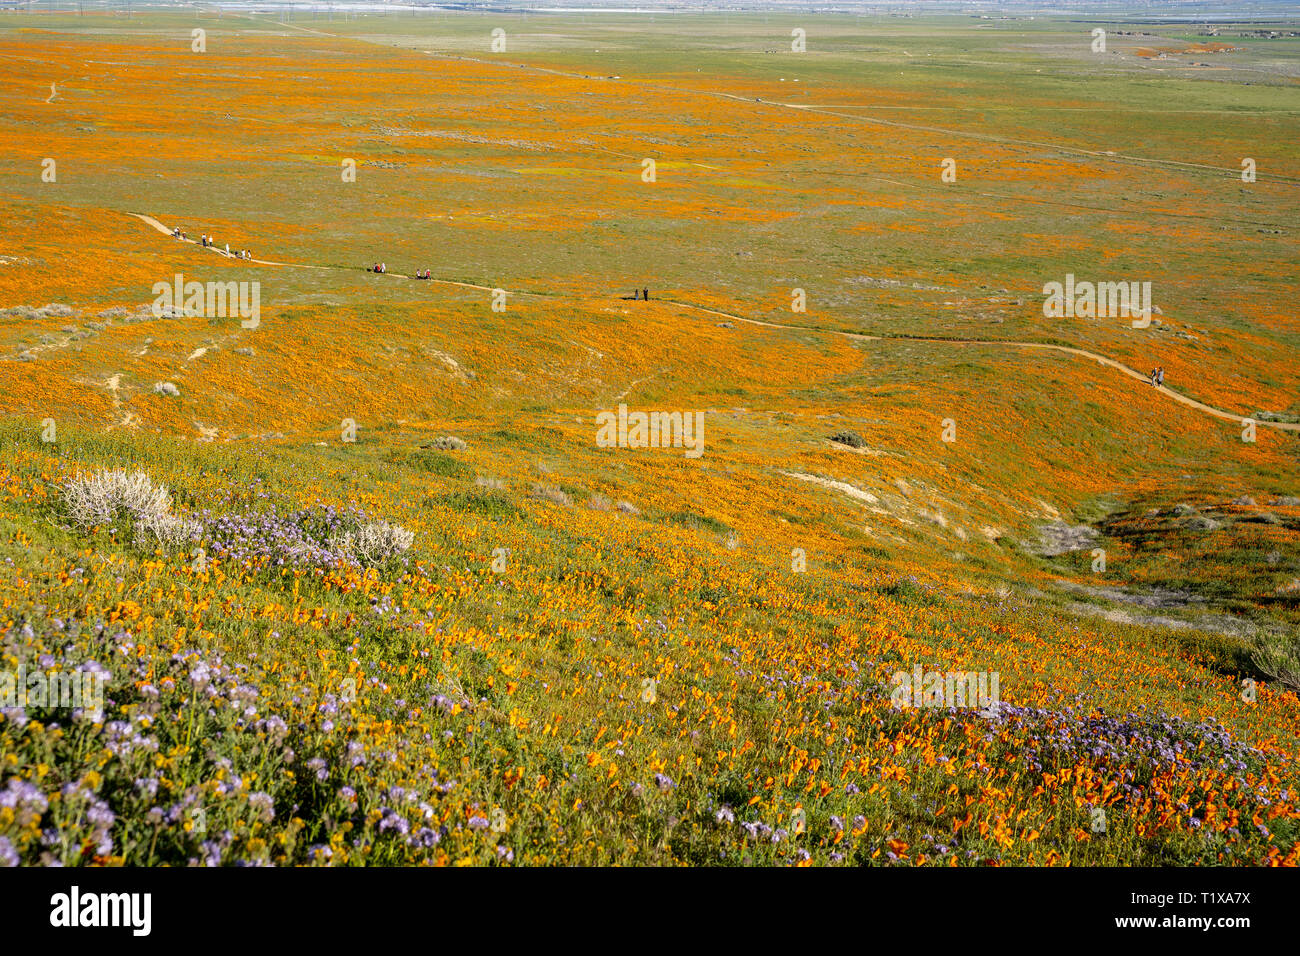 Extreme wide angle view of the Antelope Valley Poppy Reserve poppies wildflower field during the superbloom - Stock Image